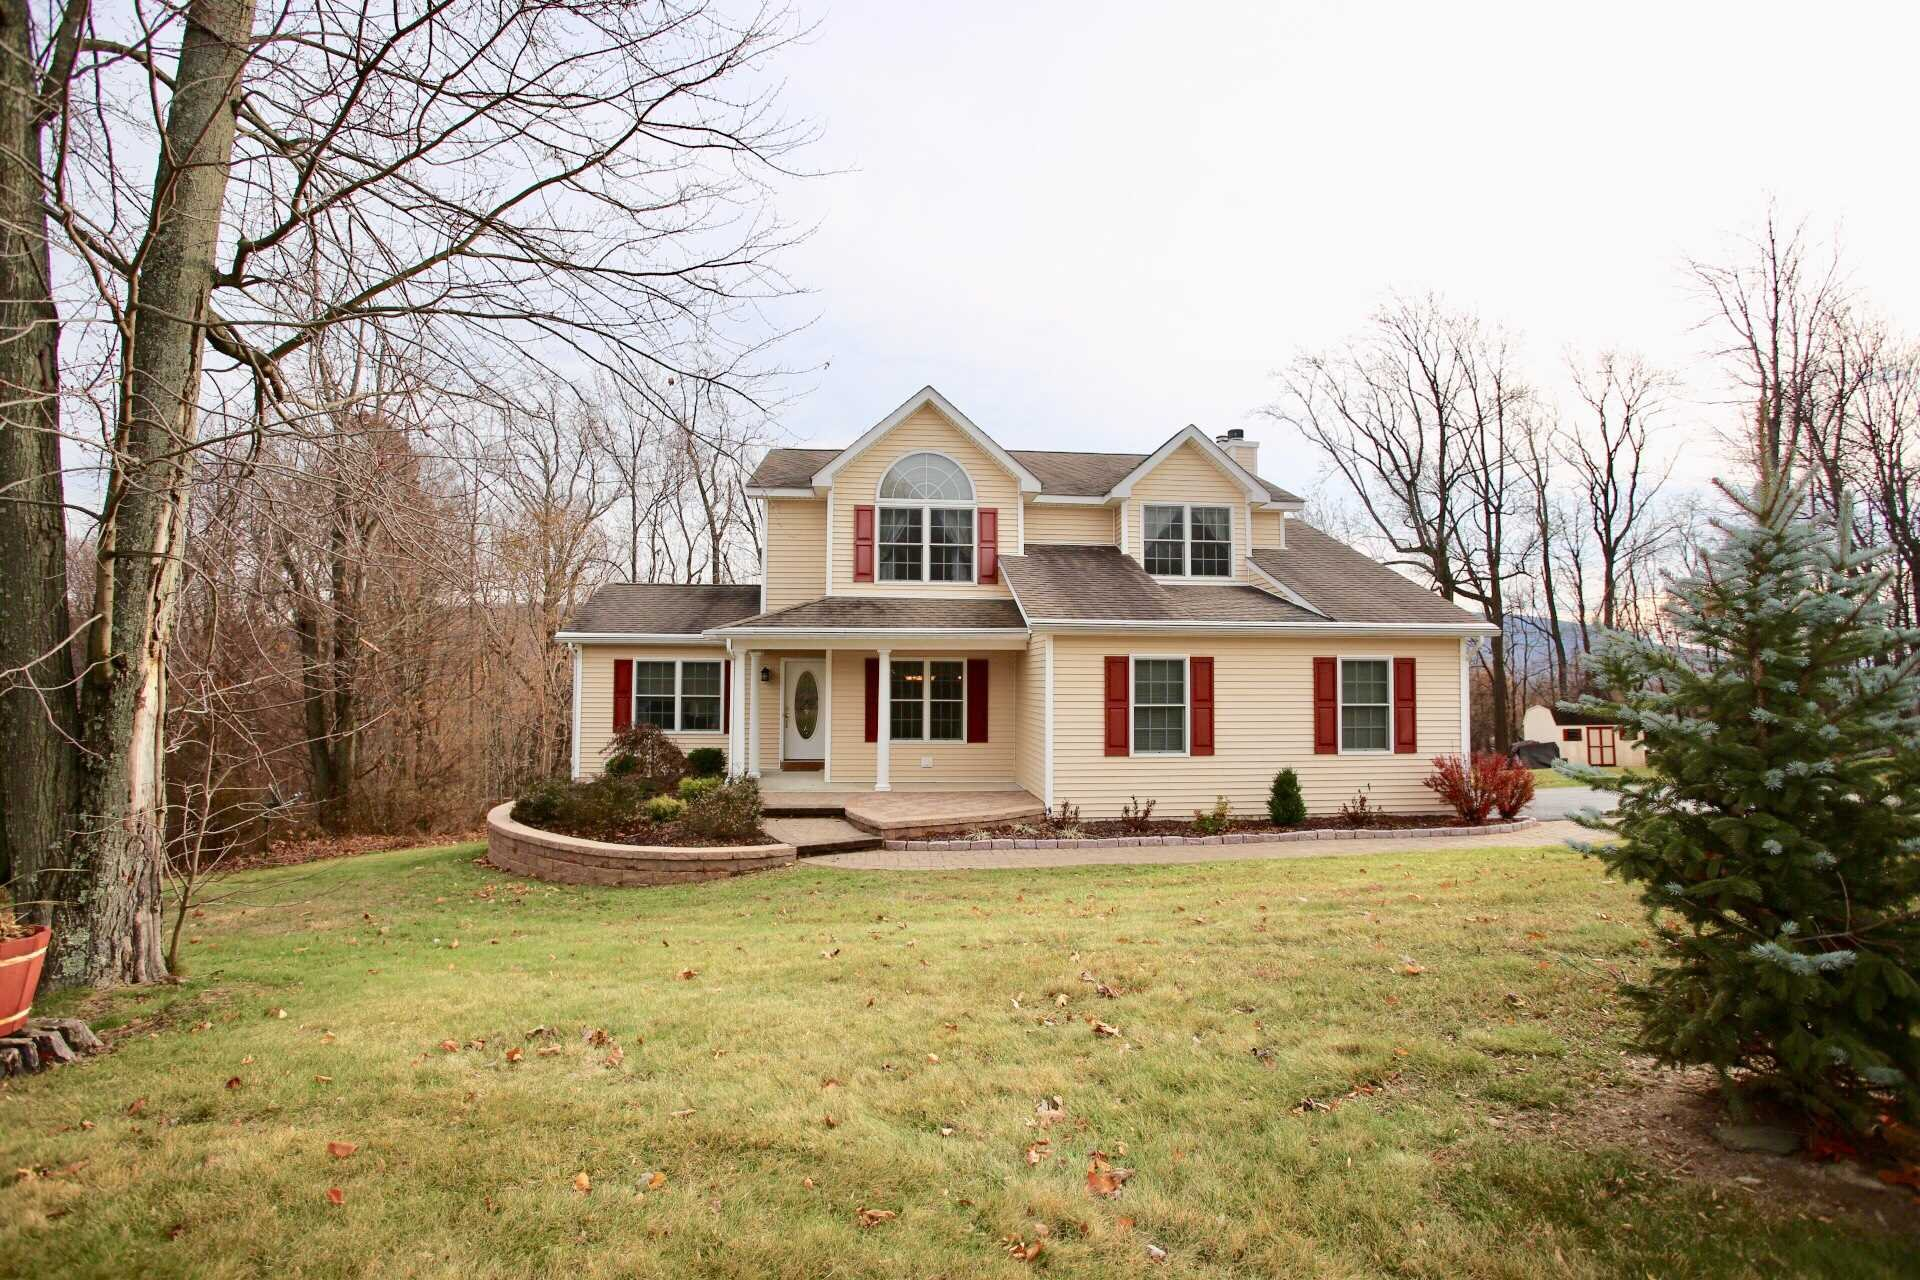 Single Family Home for Sale at 14 TREE LINE Court 14 TREE LINE Court Fishkill, New York 12524 United States